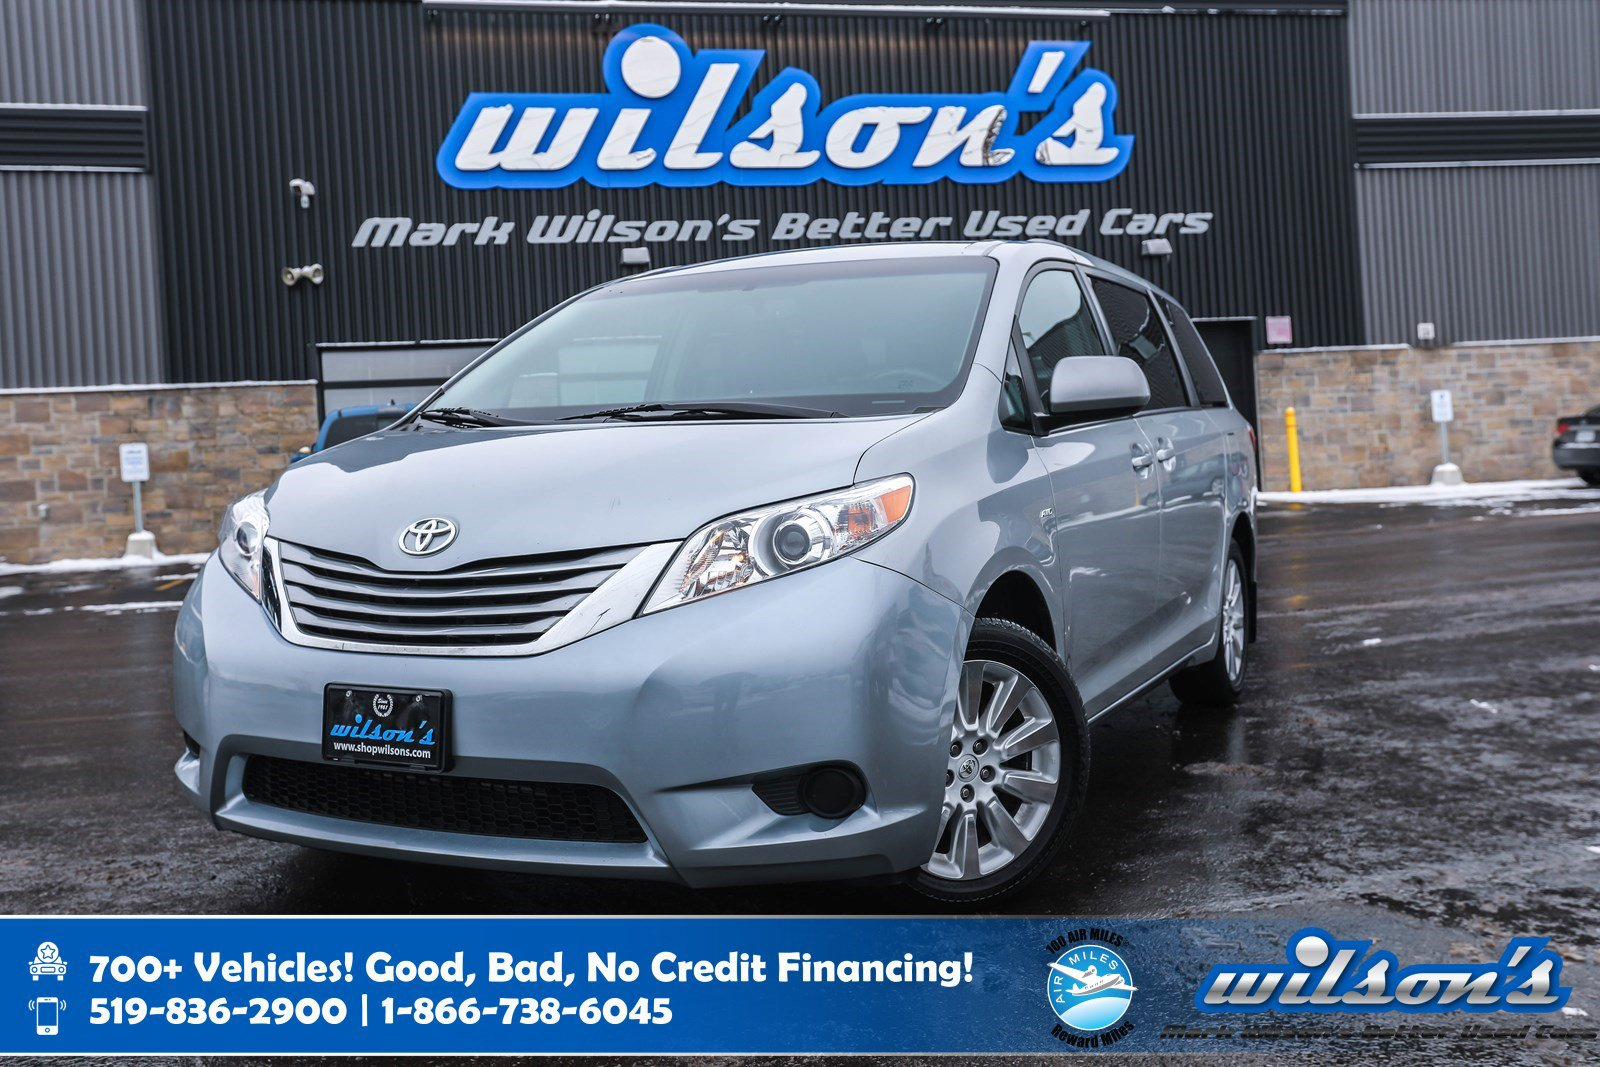 "Certified Pre-Owned 2016 Toyota Sienna LE AWD, Leather, Rear Camera, Heated + Power Seats, Bluetooth, Keyless Entry, 18"" Alloys and more!"